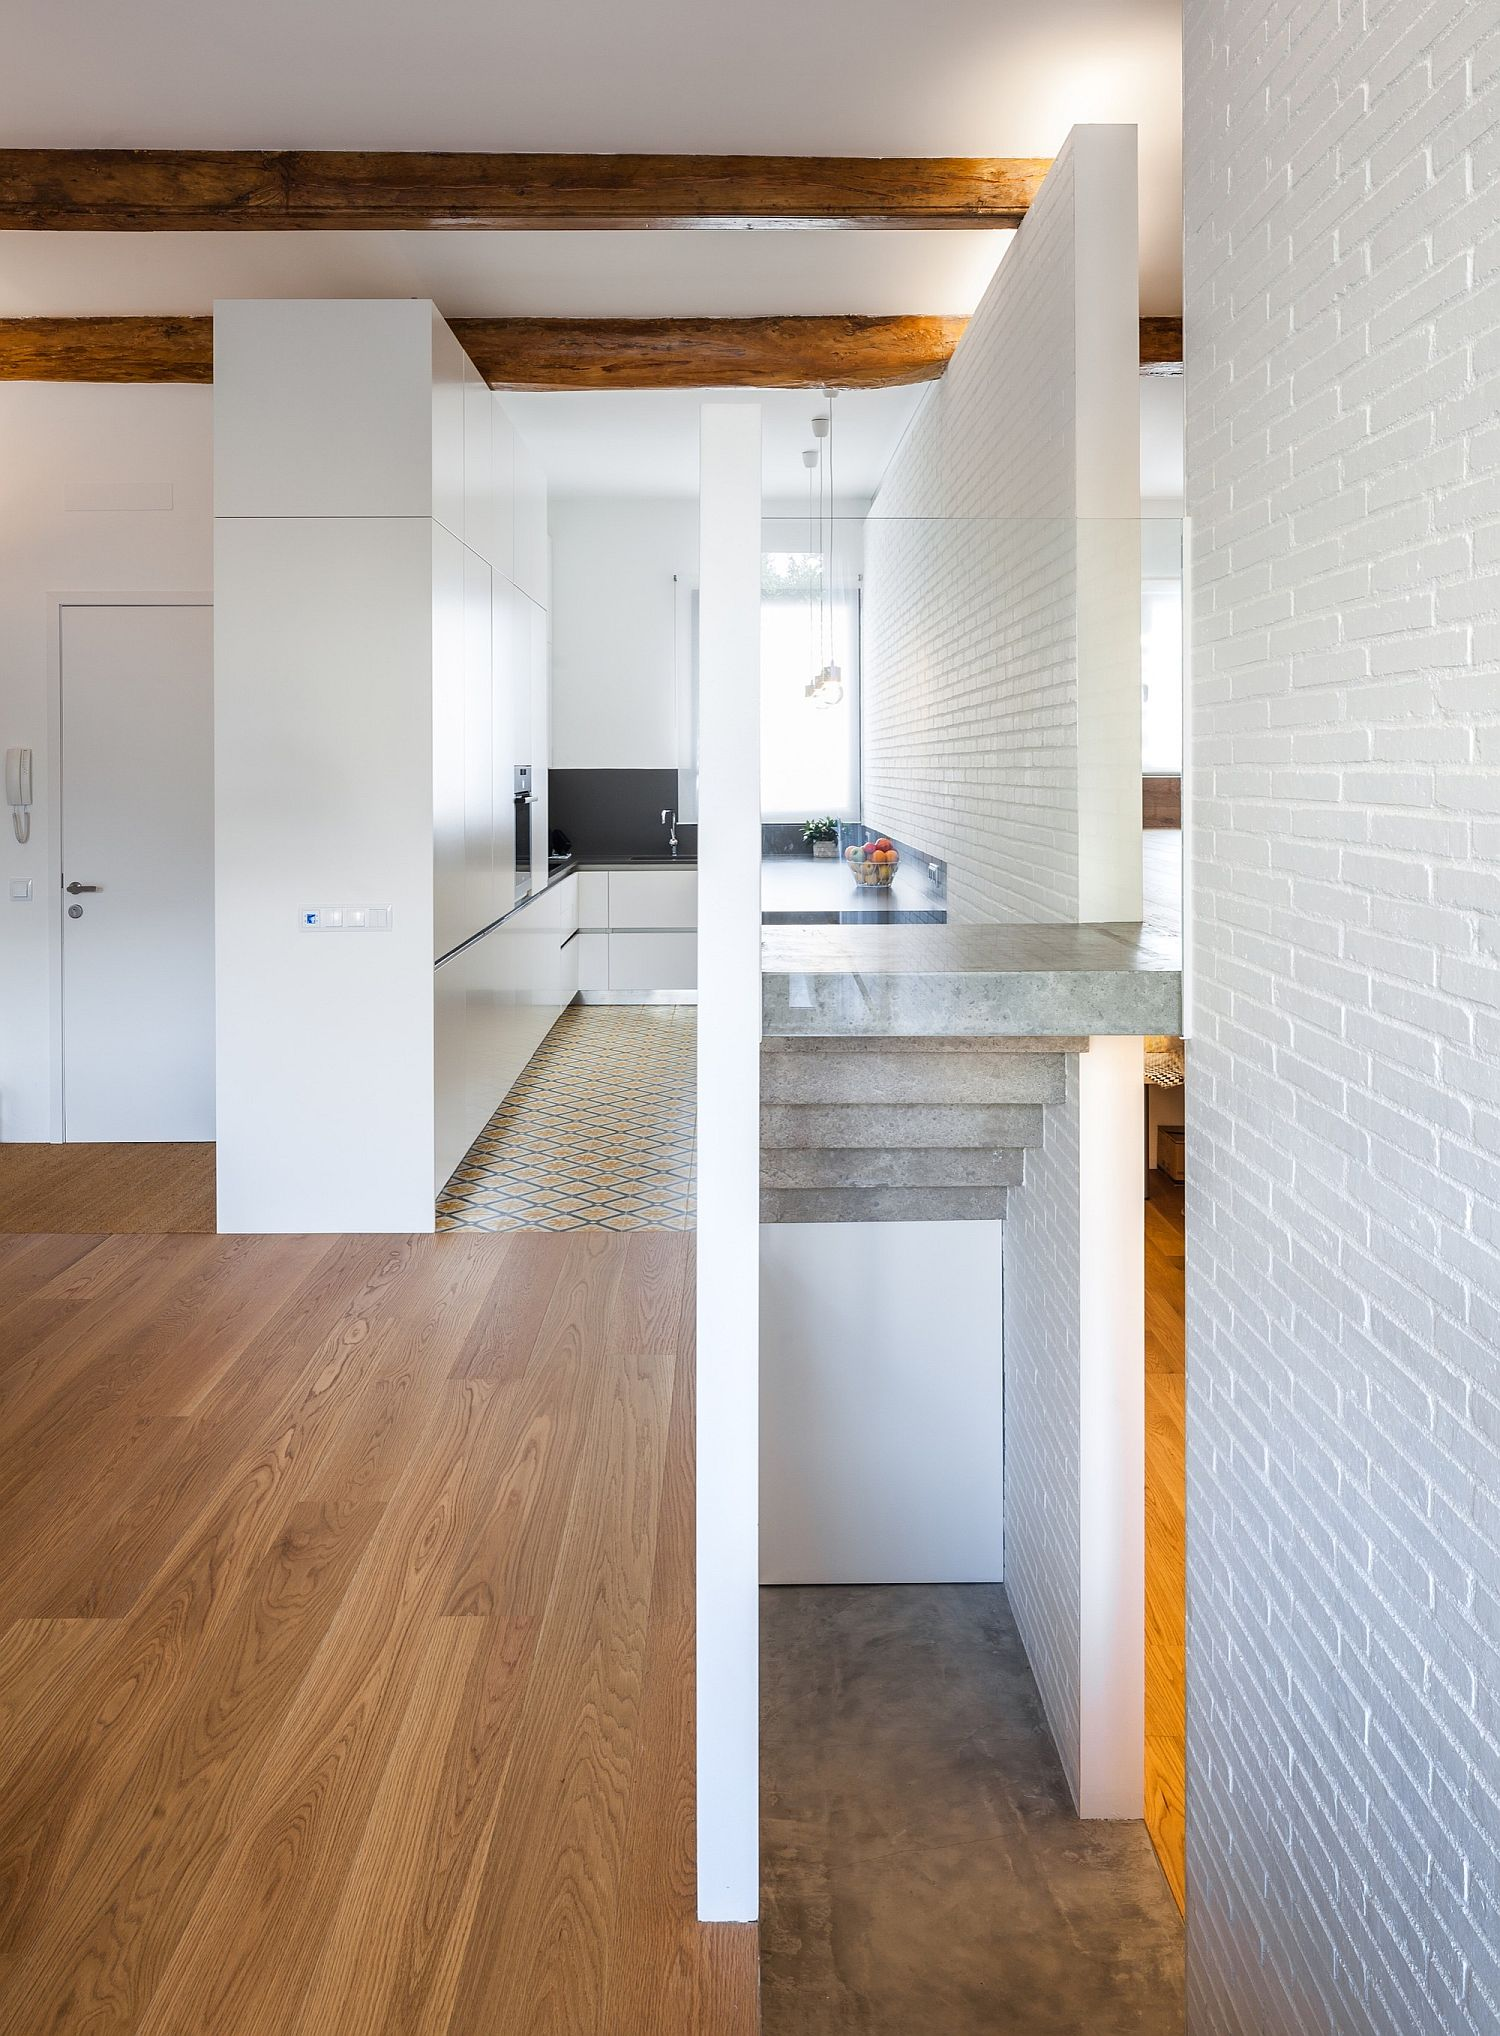 Small-corner-kitchen-in-white-with-wooden-flooring